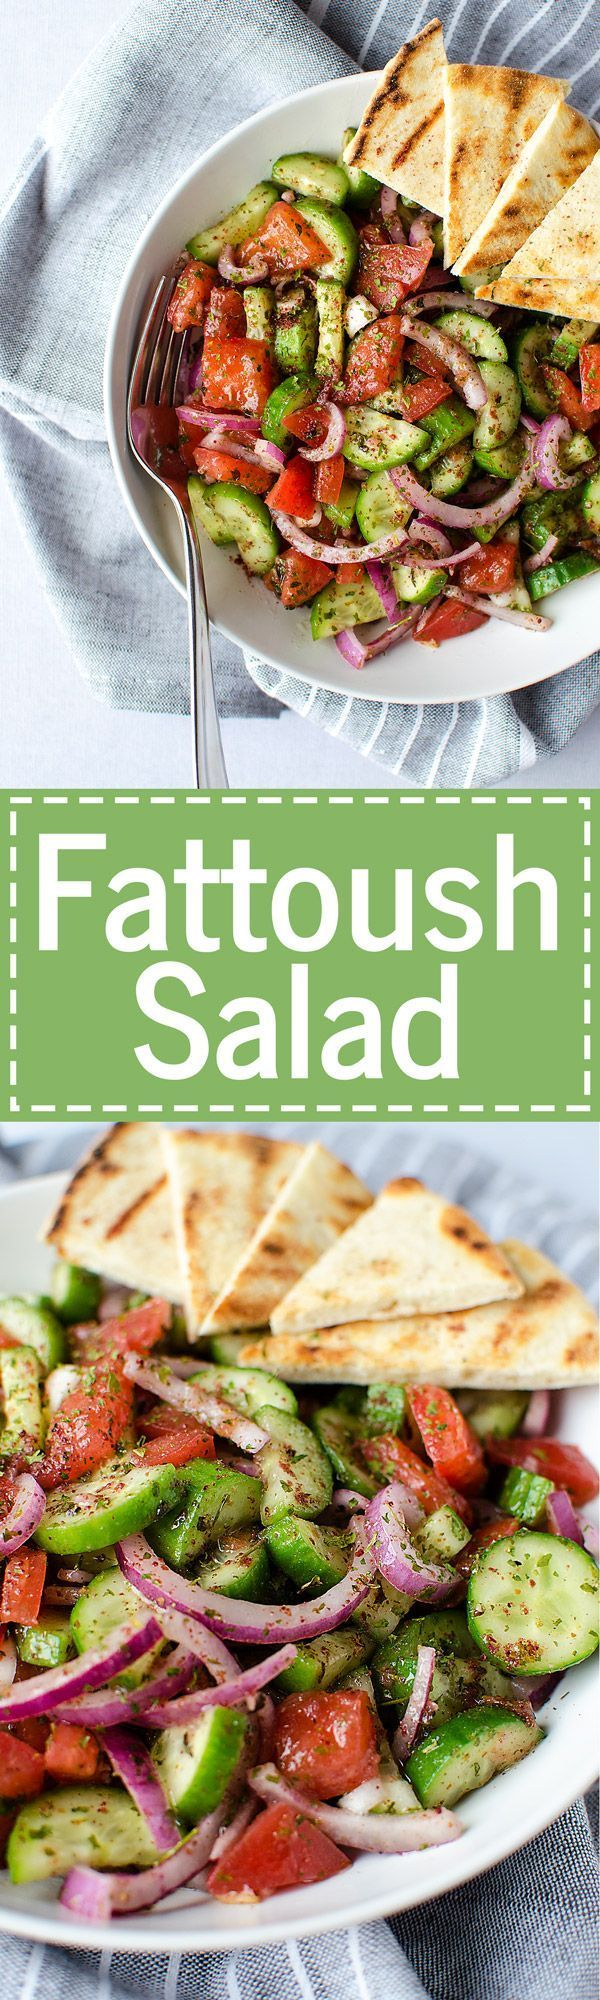 Fattoush Salad - A simple and easy Middle Eastern salad that comes together in just minutes. It's piled high with fresh veggies and leaves you feeling healthy and satisfied. (Vegan